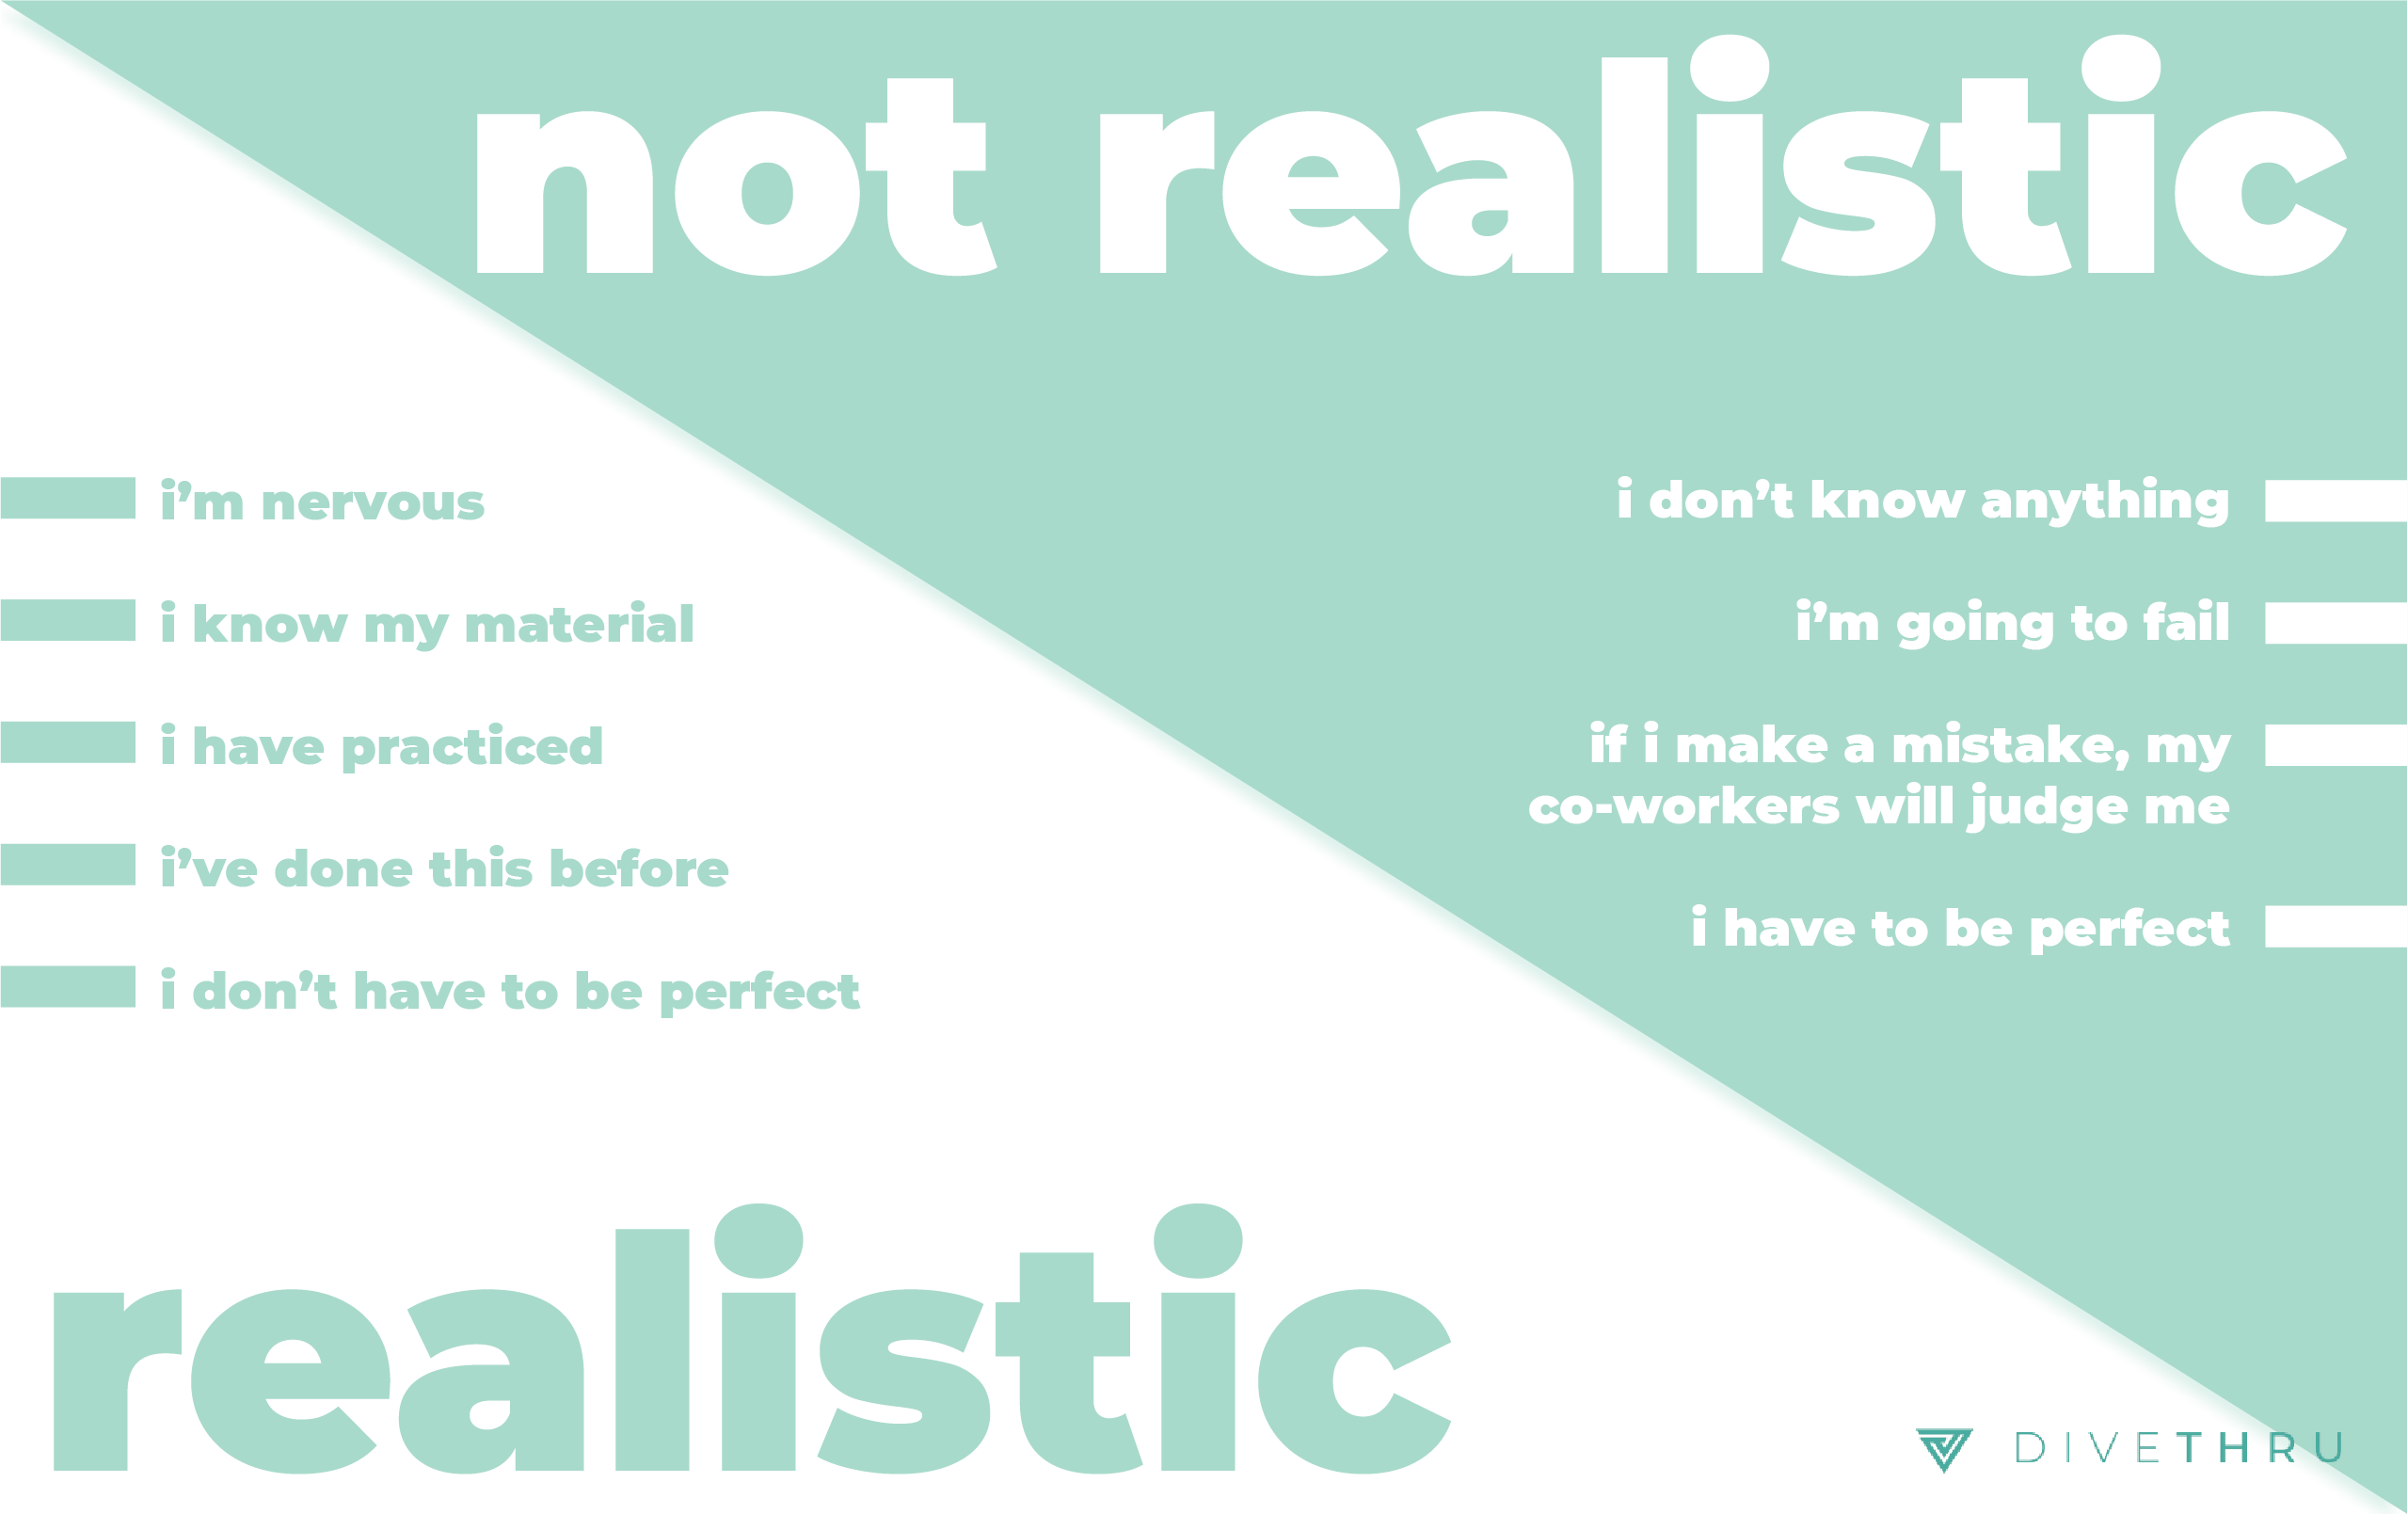 """The image has a table of realistic versus not realistic intruding thoughts. Not realistic thoughts include """"I don't know anything; I'm going to fail; If I make a mistake, my co-workers will judge me; I have to be perfect."""" Realistic thoughts include: """"I'm nervous; I know my material; I have practiced; I've done this before; I don't have to be perfect."""""""